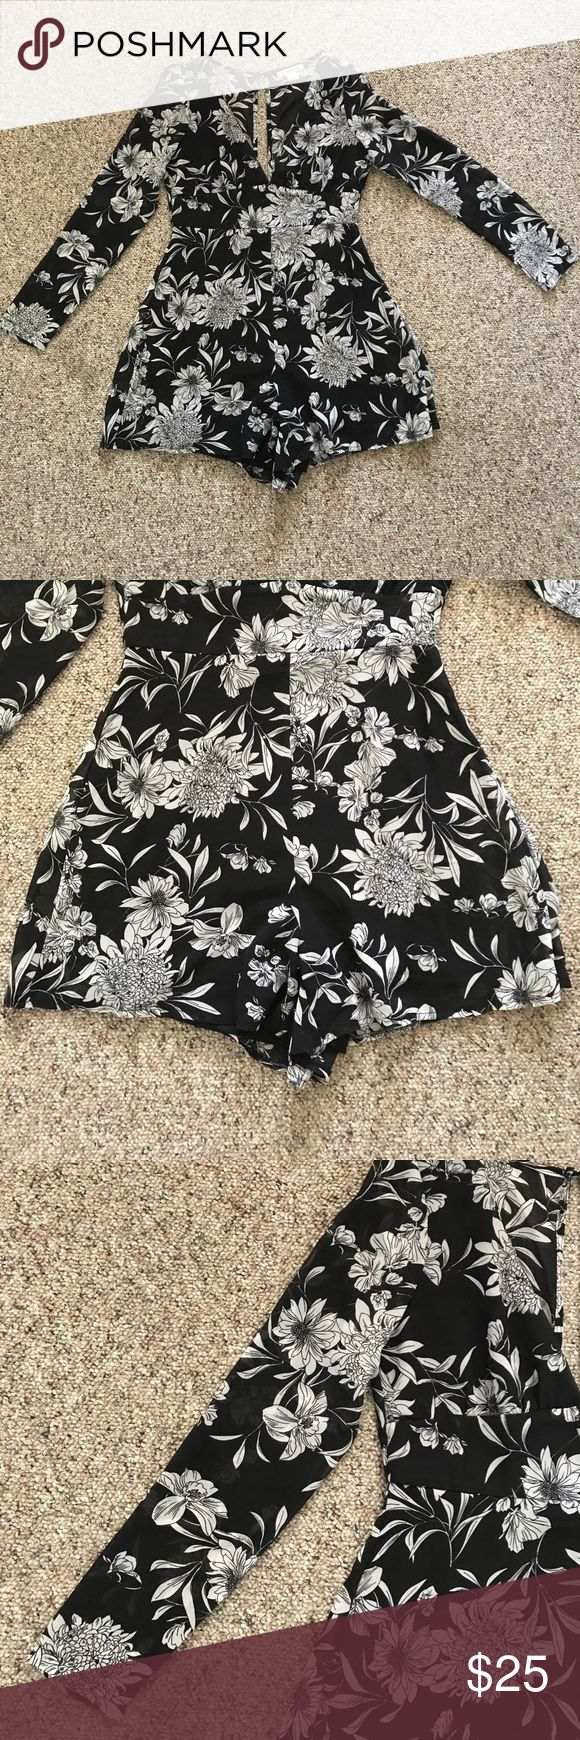 Black & white floral Romper Black and white Romper with floral design. Long sleeve with sheer arms. Back has a slit and it zips up with a button at the top. glamorous pac sun Other